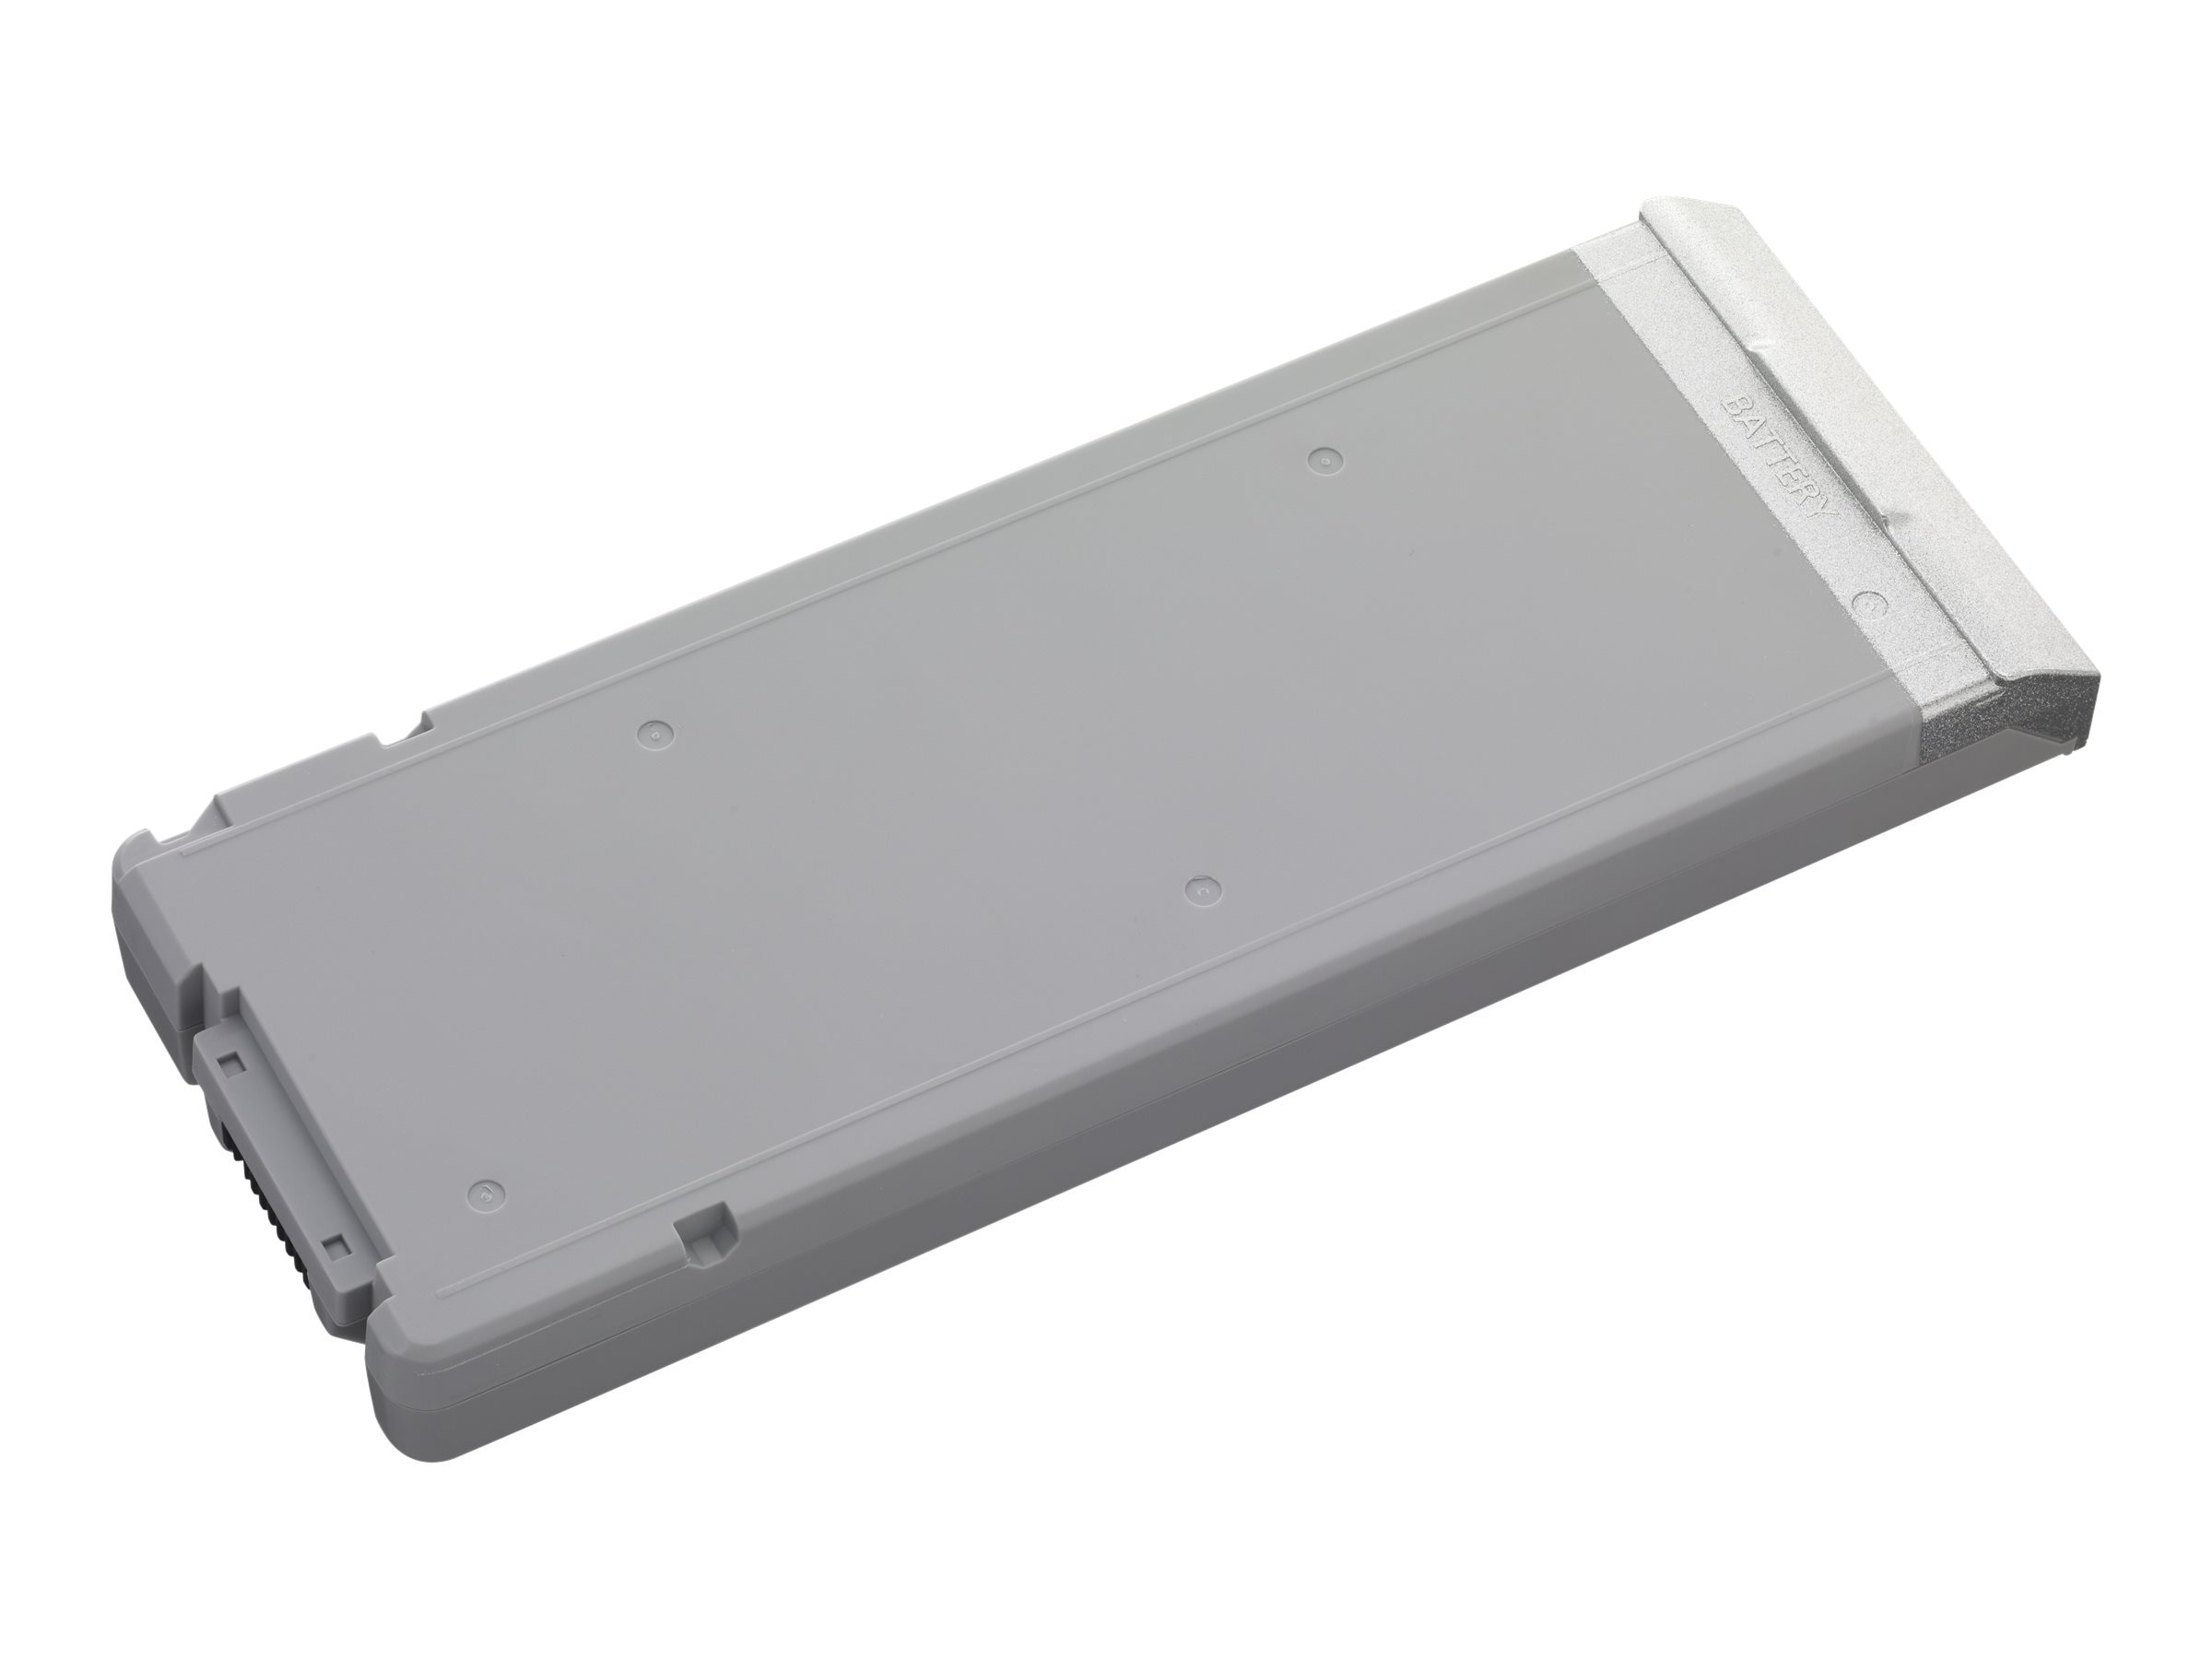 Panasonic Long Life Battery for CF-C2 MK1, CF-VZSU83U